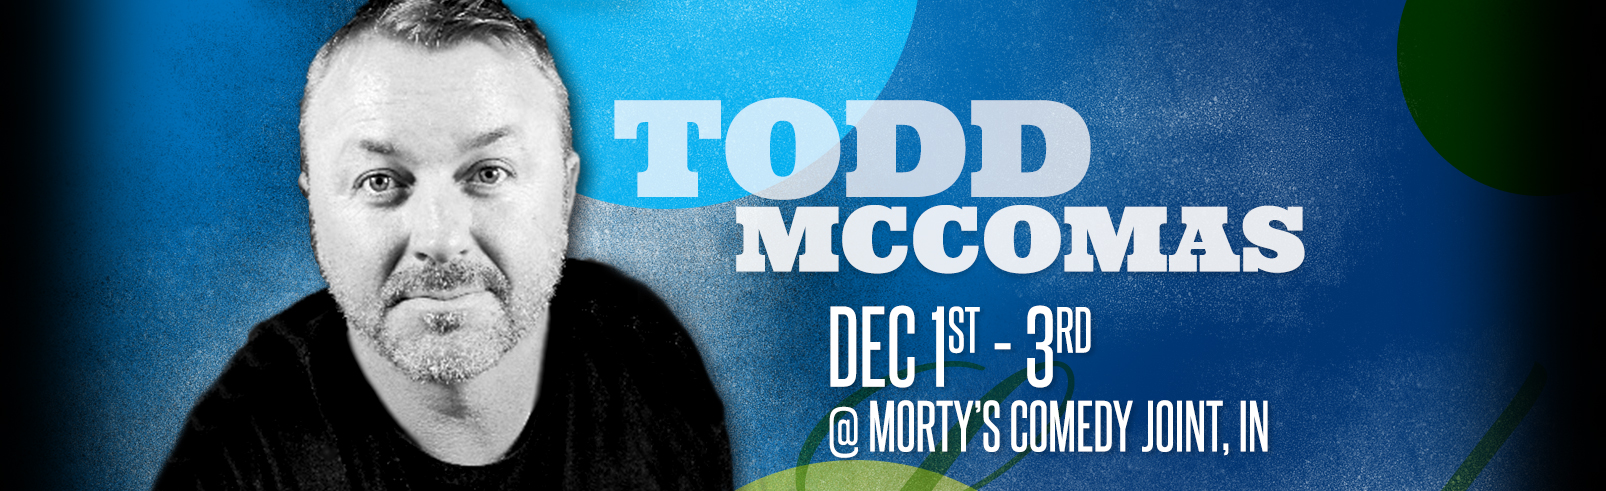 Todd McComas @ Morty's Comedy Joint